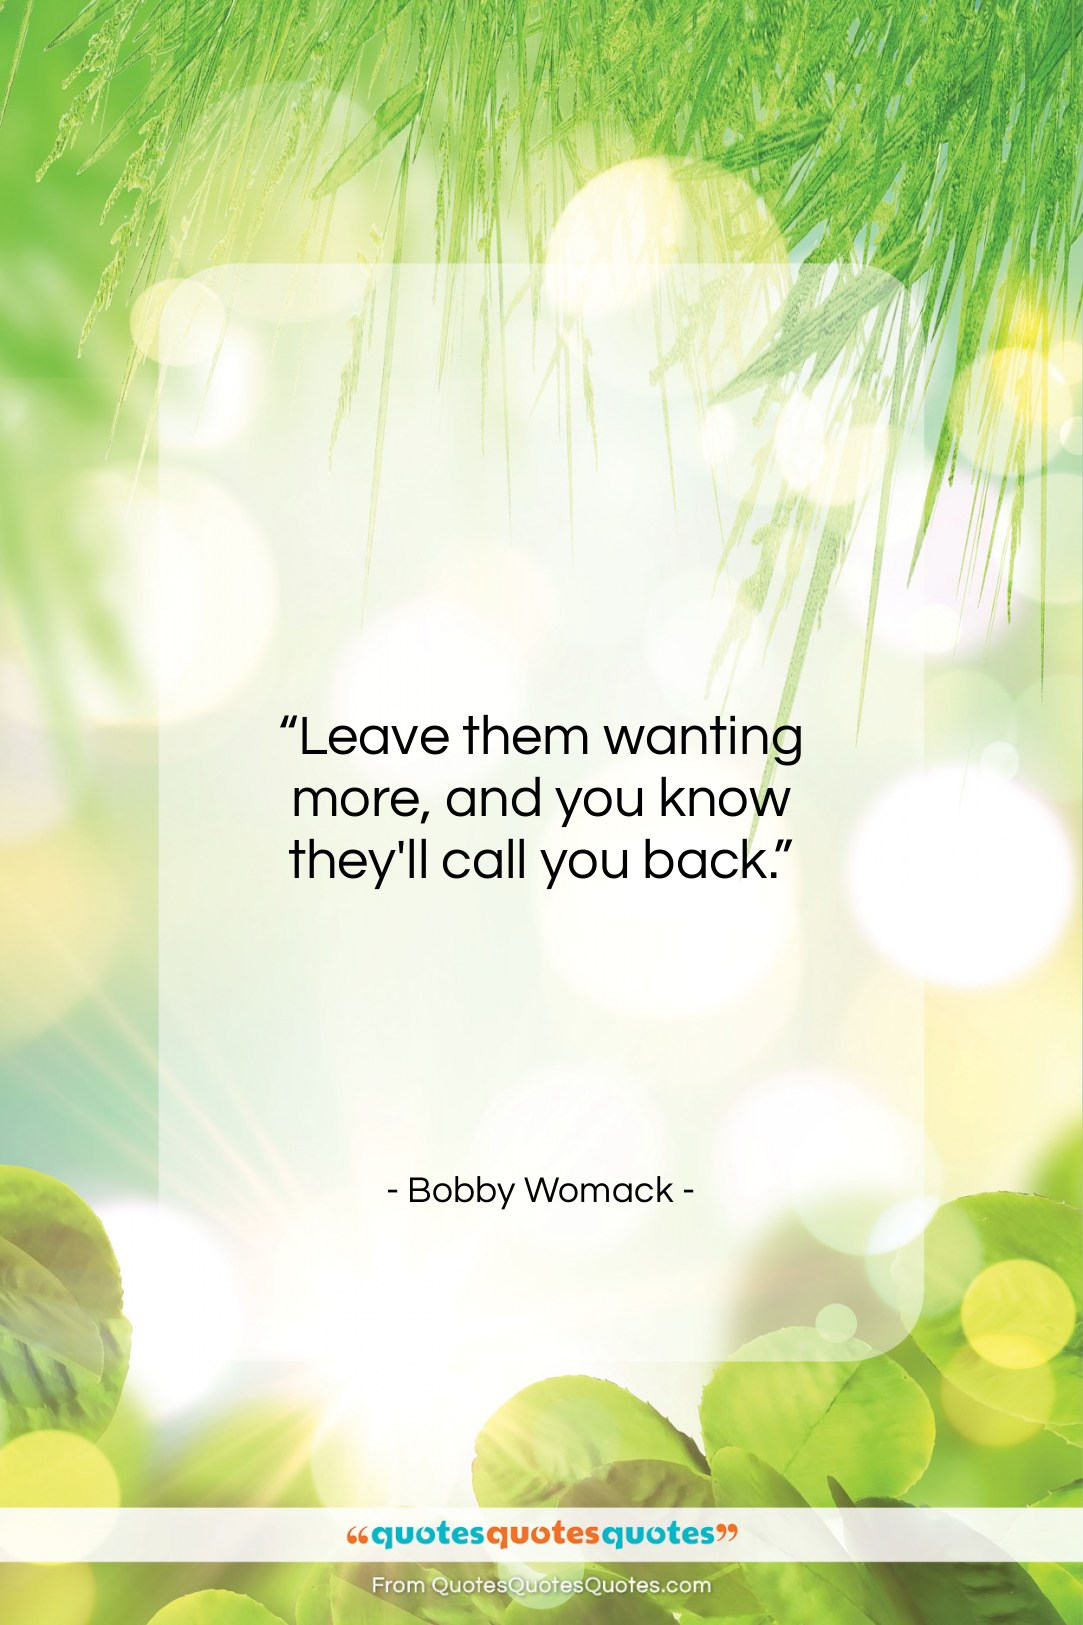 Get The Whole Bobby Womack Quote Leave Them Wanting More And You